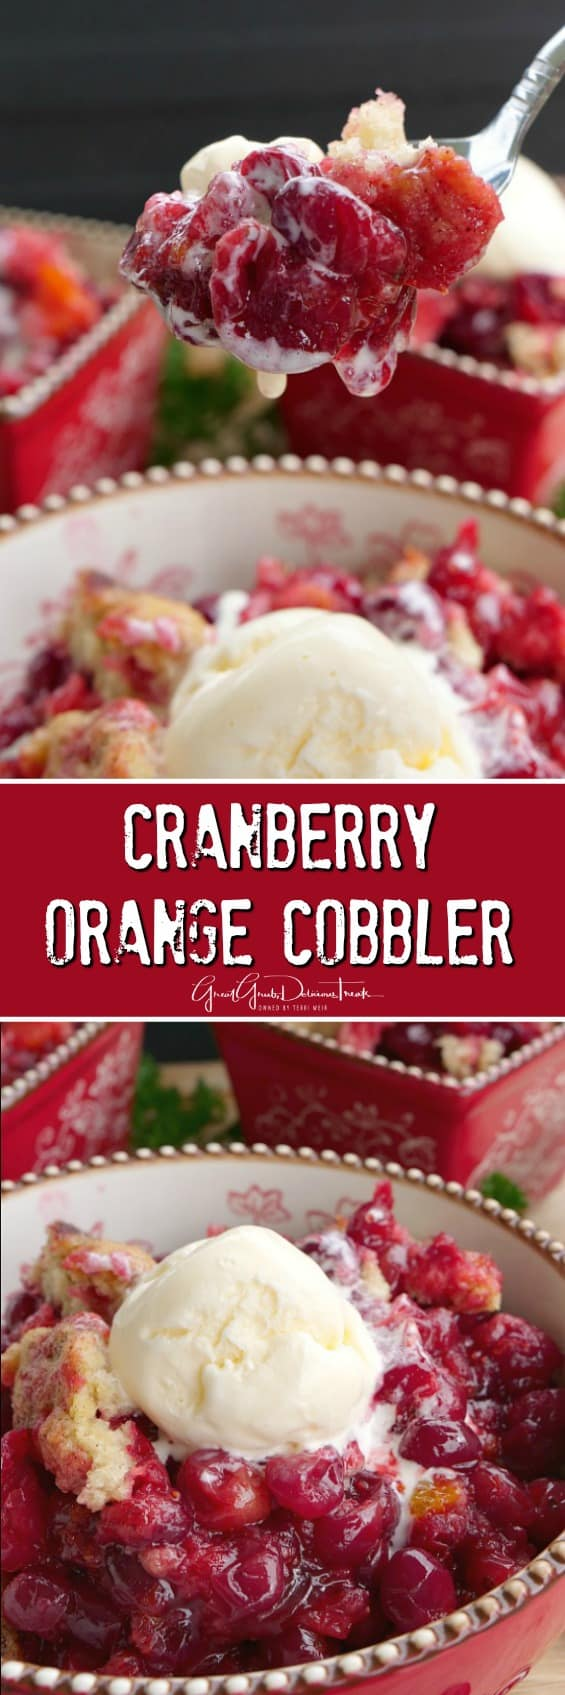 Cranberry Orange Cobbler